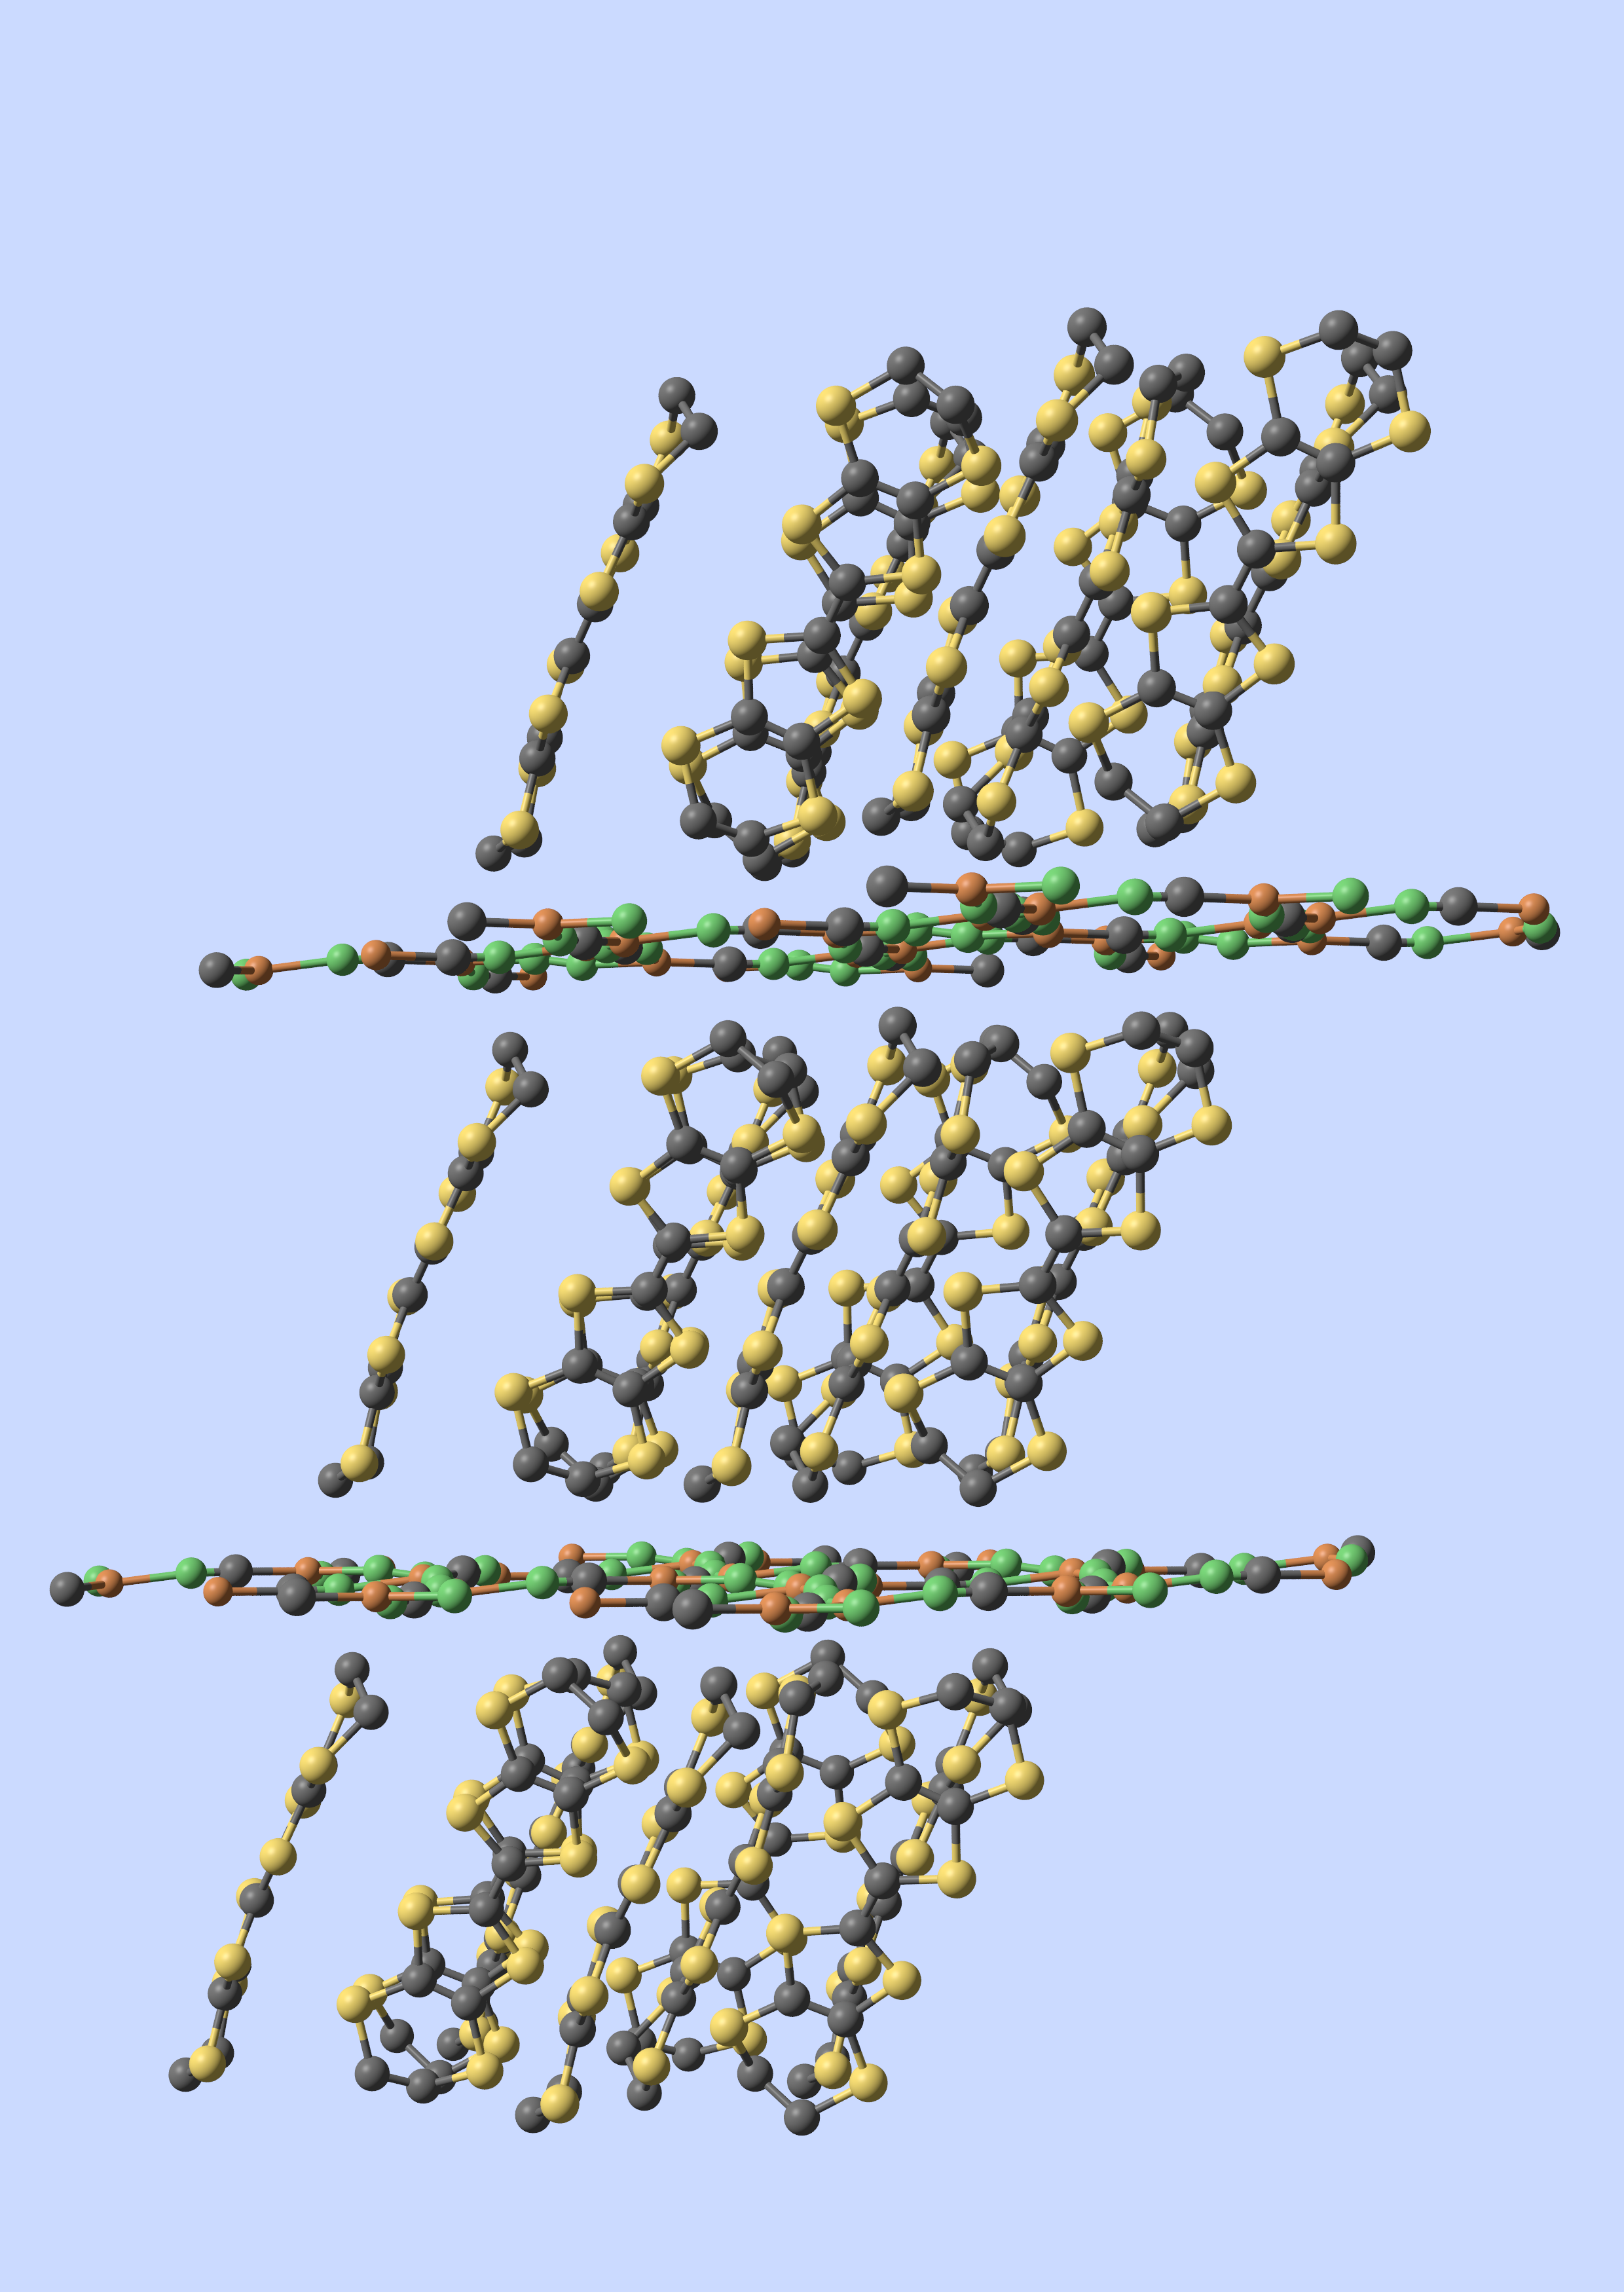 Crystal structure of k-(BEDT-TTF)2Cu2(CN)3